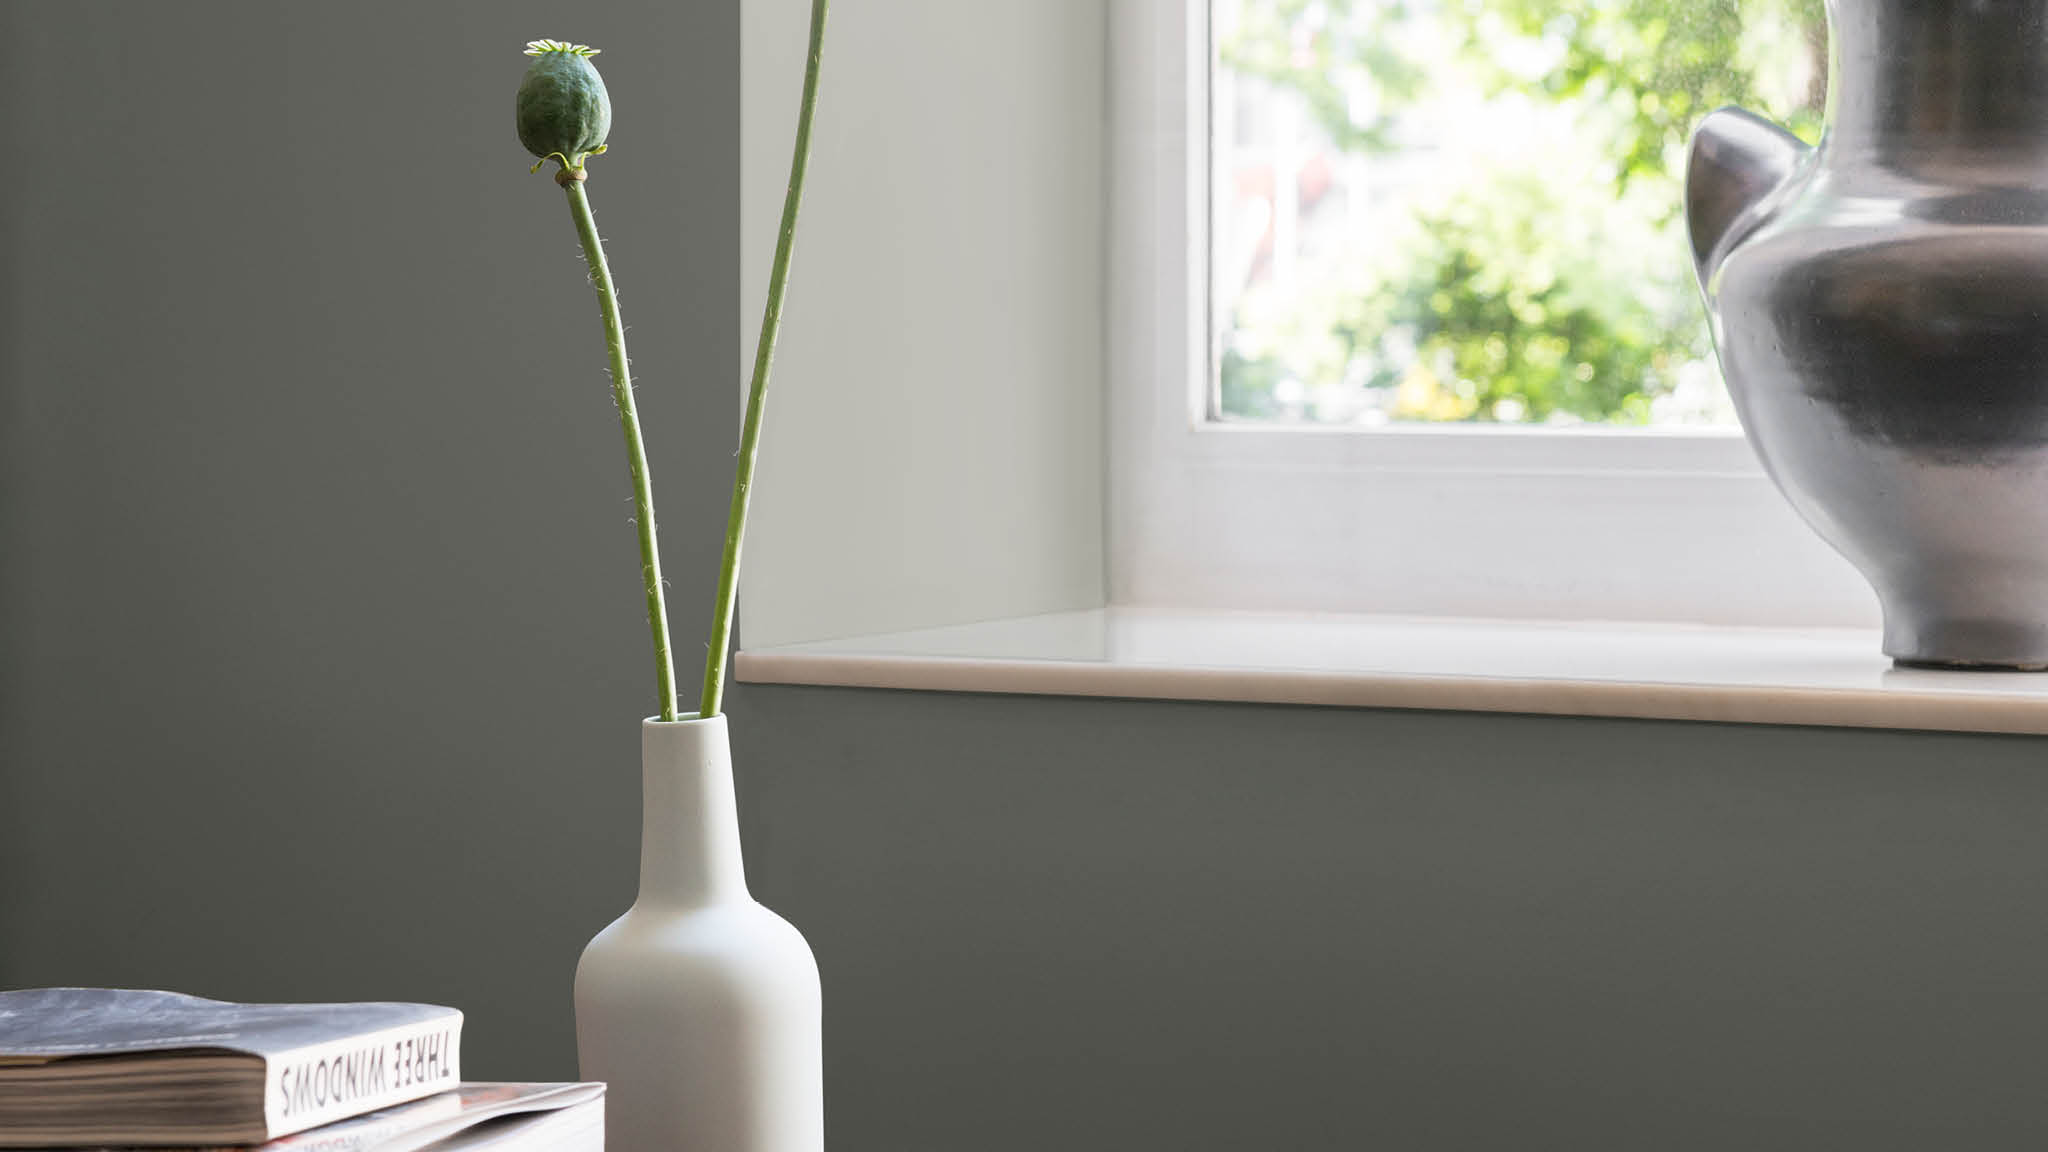 Matt emulsion is smooth and velvety making it suitable for most interior walls.